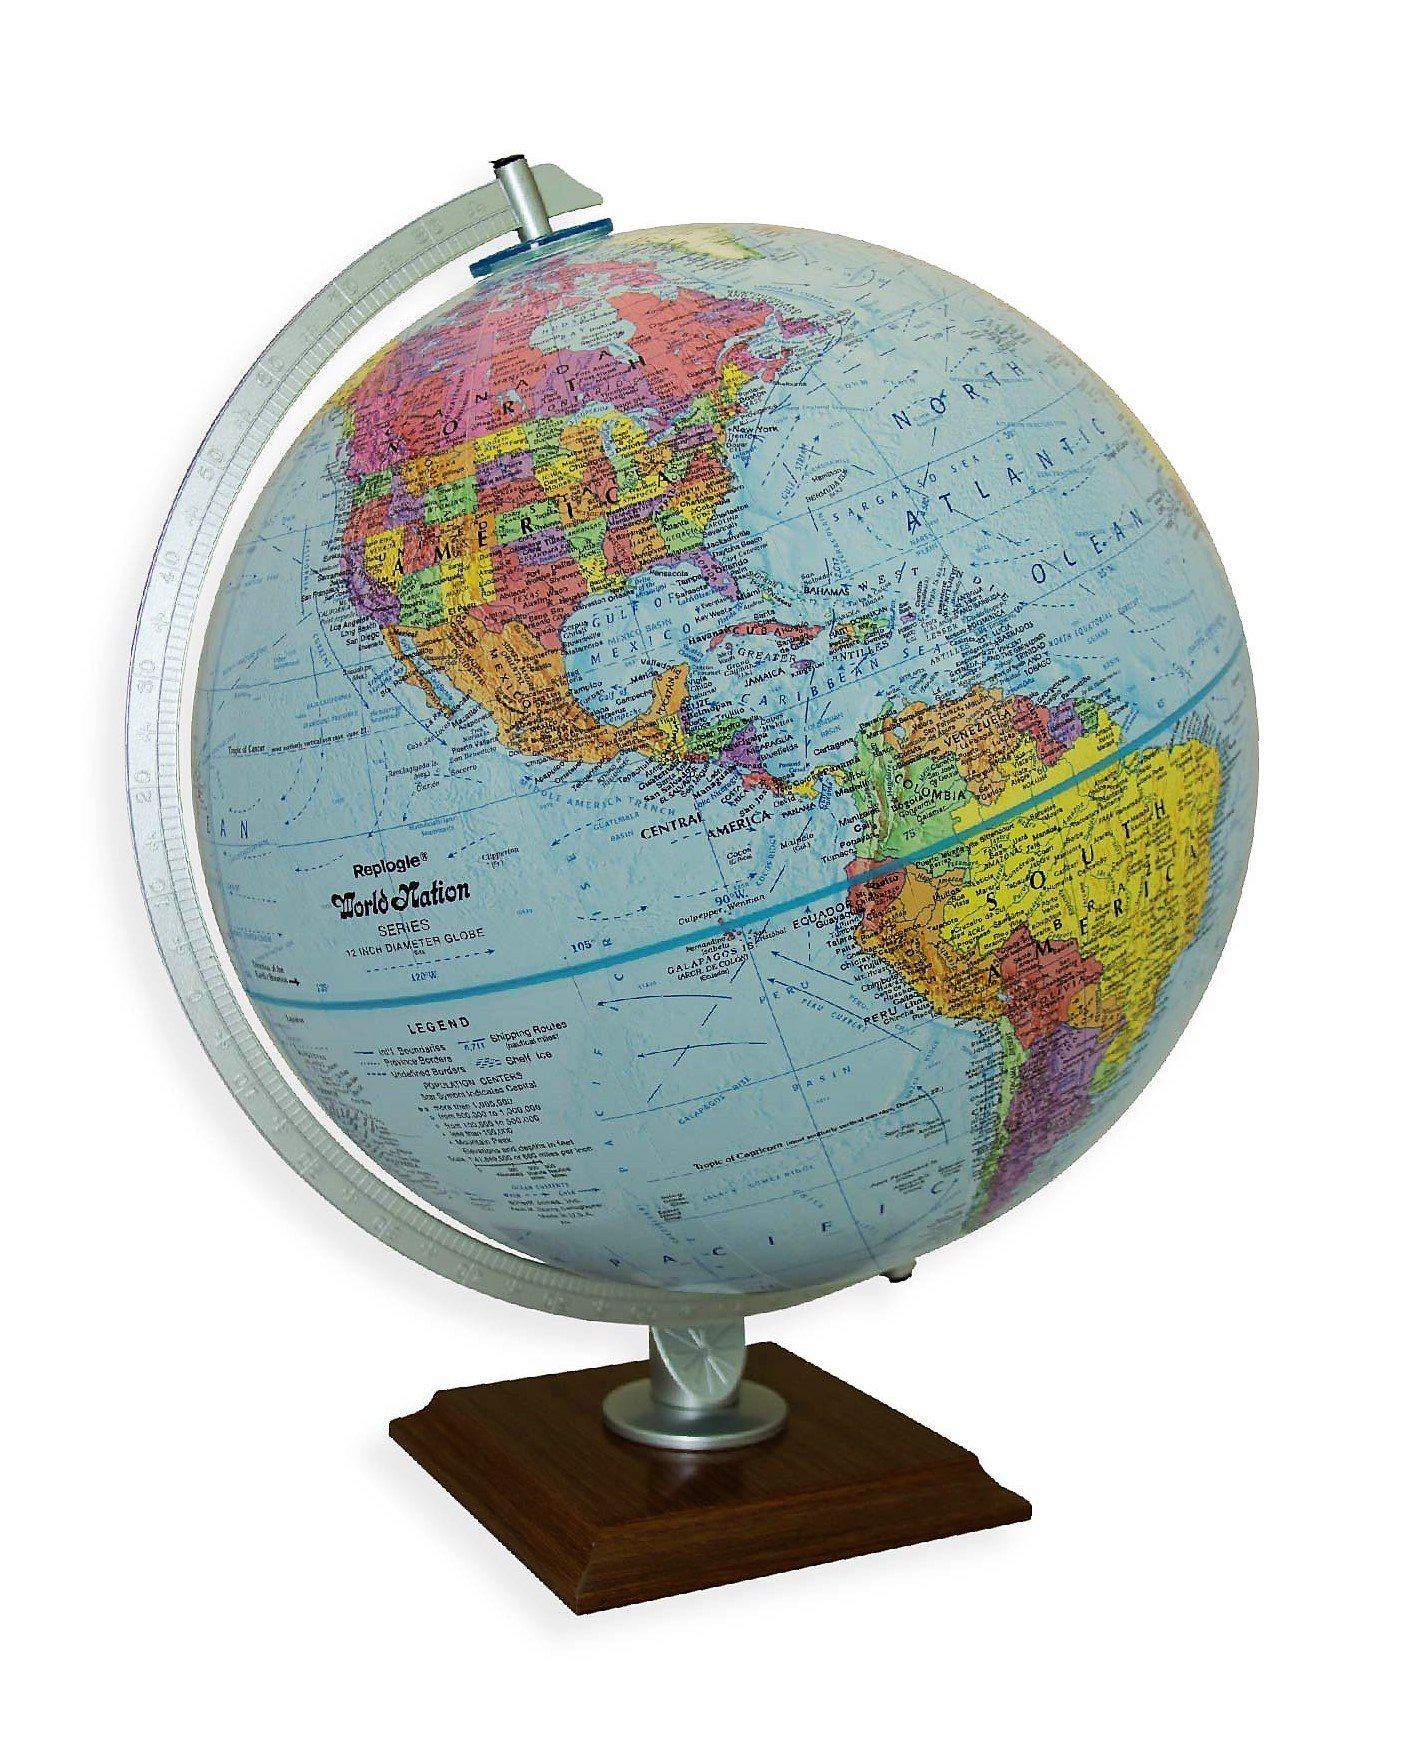 Replogle Timeless - Classic Blue Ocean Desktop World Globe, Cherry Wood Square Base, Over 4,000 Place Names, Designed for Antique-Style Home Décor (12''/30 cm diameter)